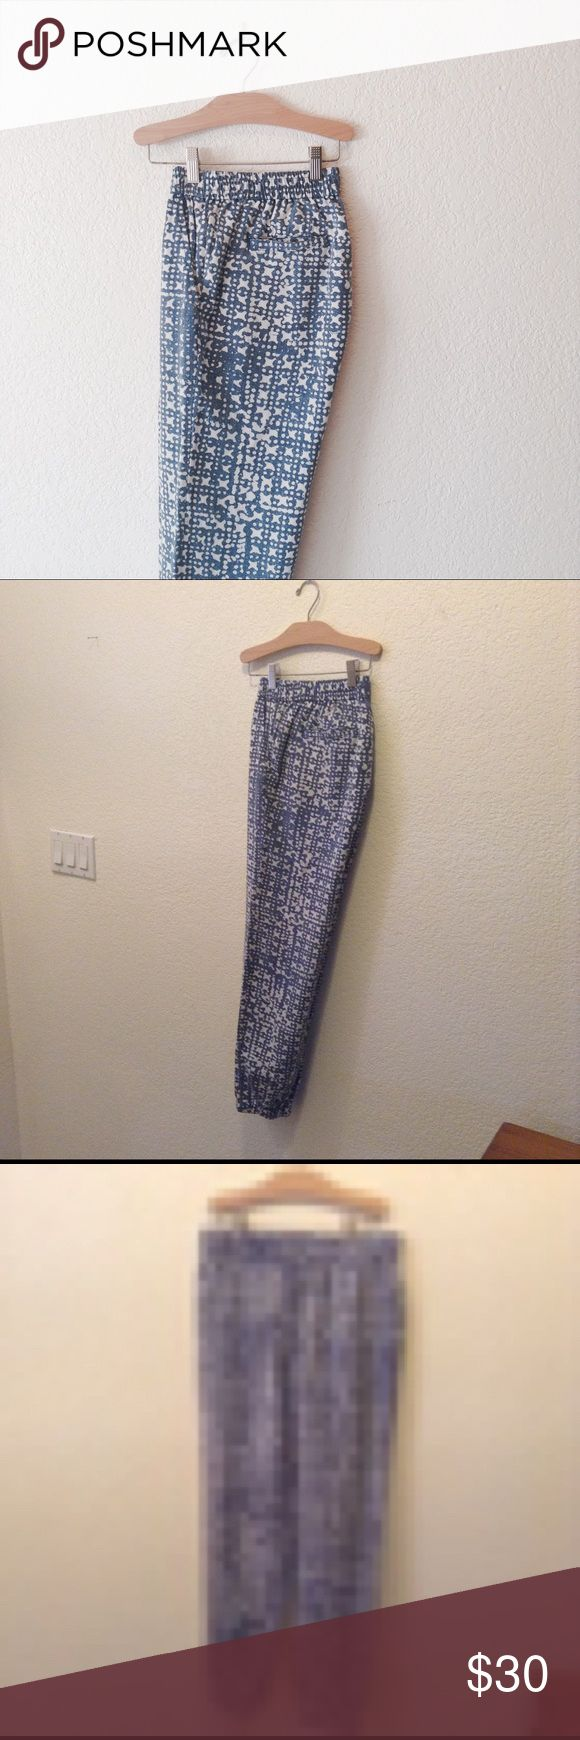 Michael Kors Ikat Drawstring Jogger Pants Excellent condition. These pants have front and back pockets, with an Ikat pattern in blue and cream, a drawstring front, and elastic pant cuffs. Joggers. Questions and offers are welcome Michael Kors Pants Track Pants & Joggers